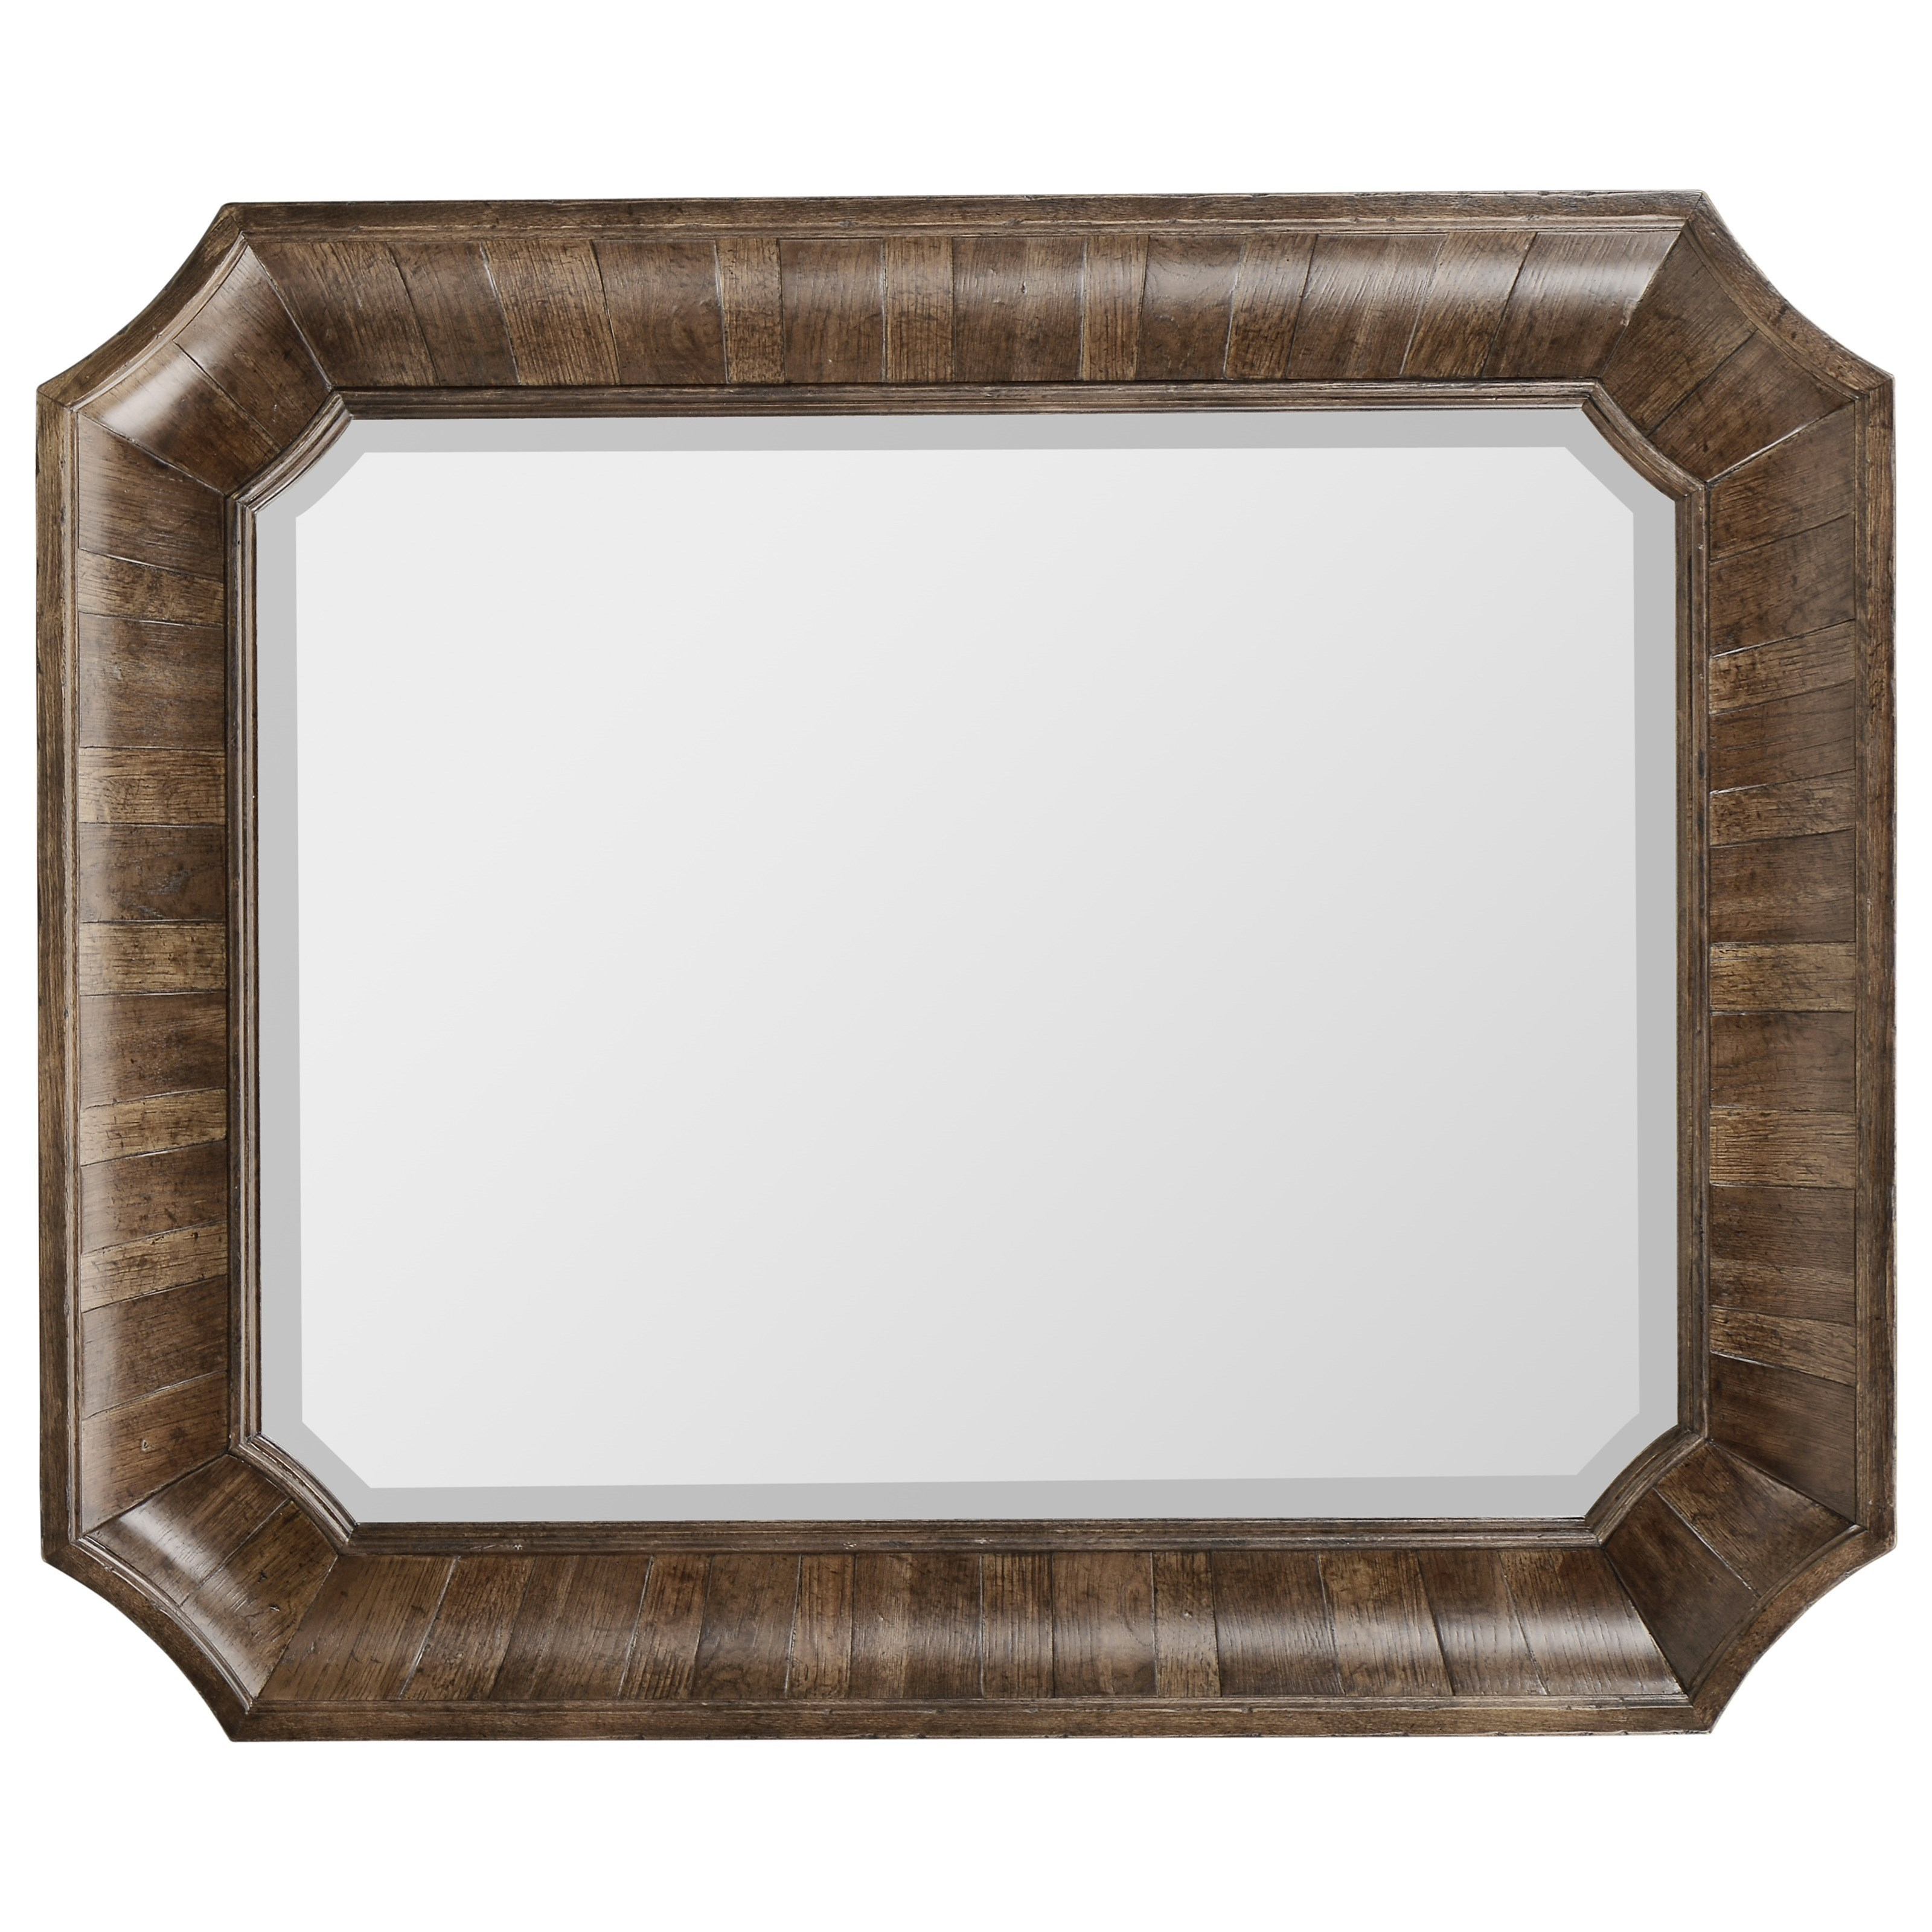 American Chapter Barrel Stave Mirror by A.R.T. Furniture Inc at Home Collections Furniture